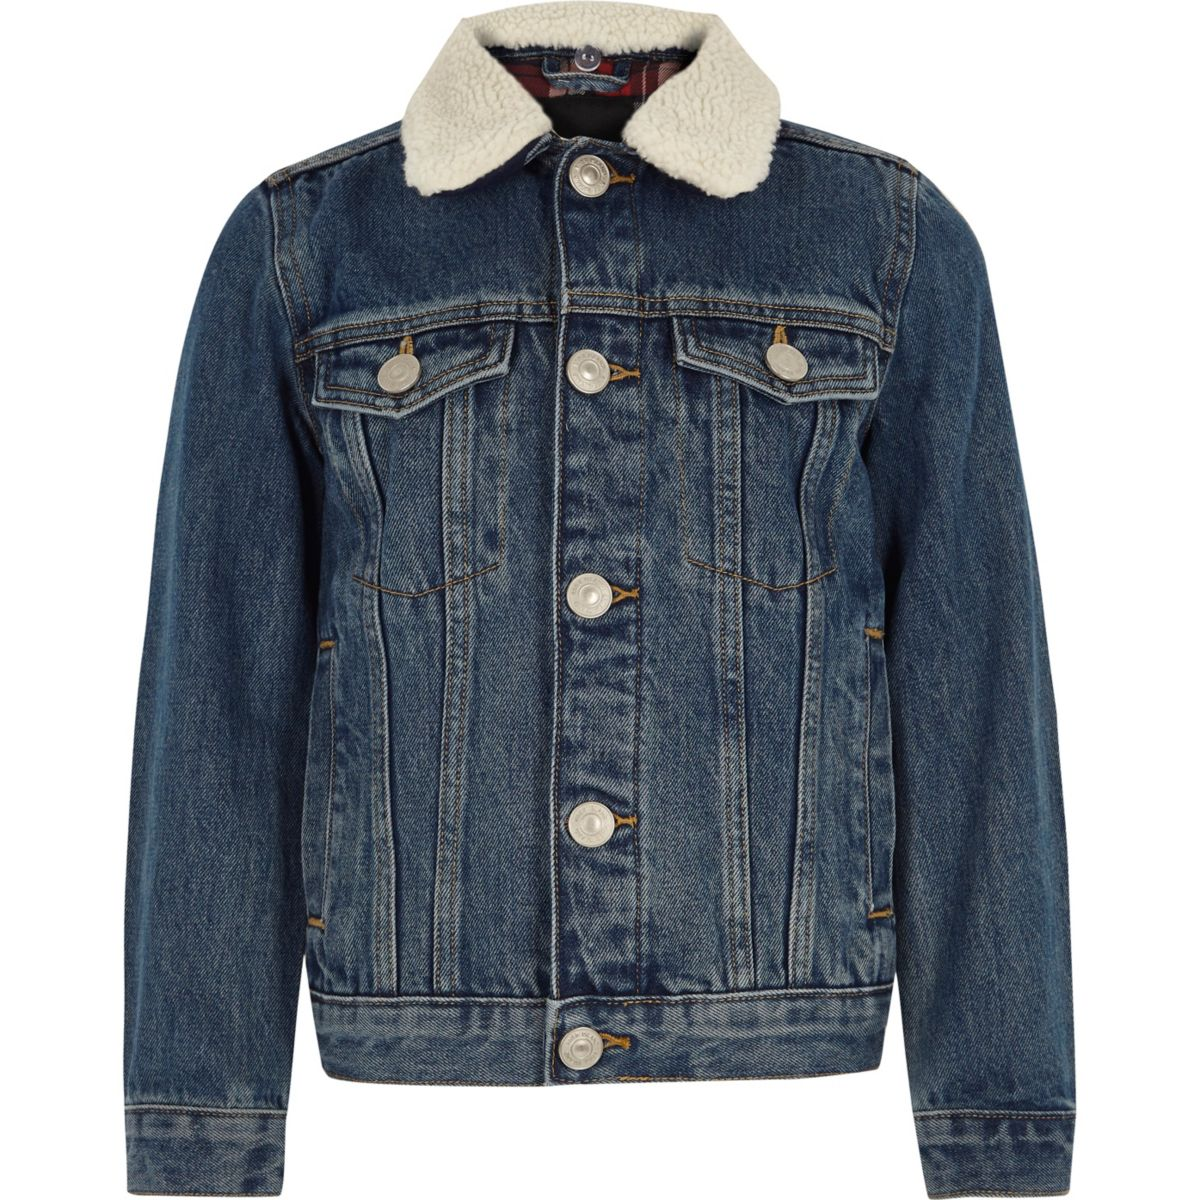 Ralph Lauren - Little Boy's Denim Jacket erawtoir.ga, offering the modern energy, style and personalized service of Saks Fifth Avenue stores, in an enhanced, easy-to-navigate shopping experience.